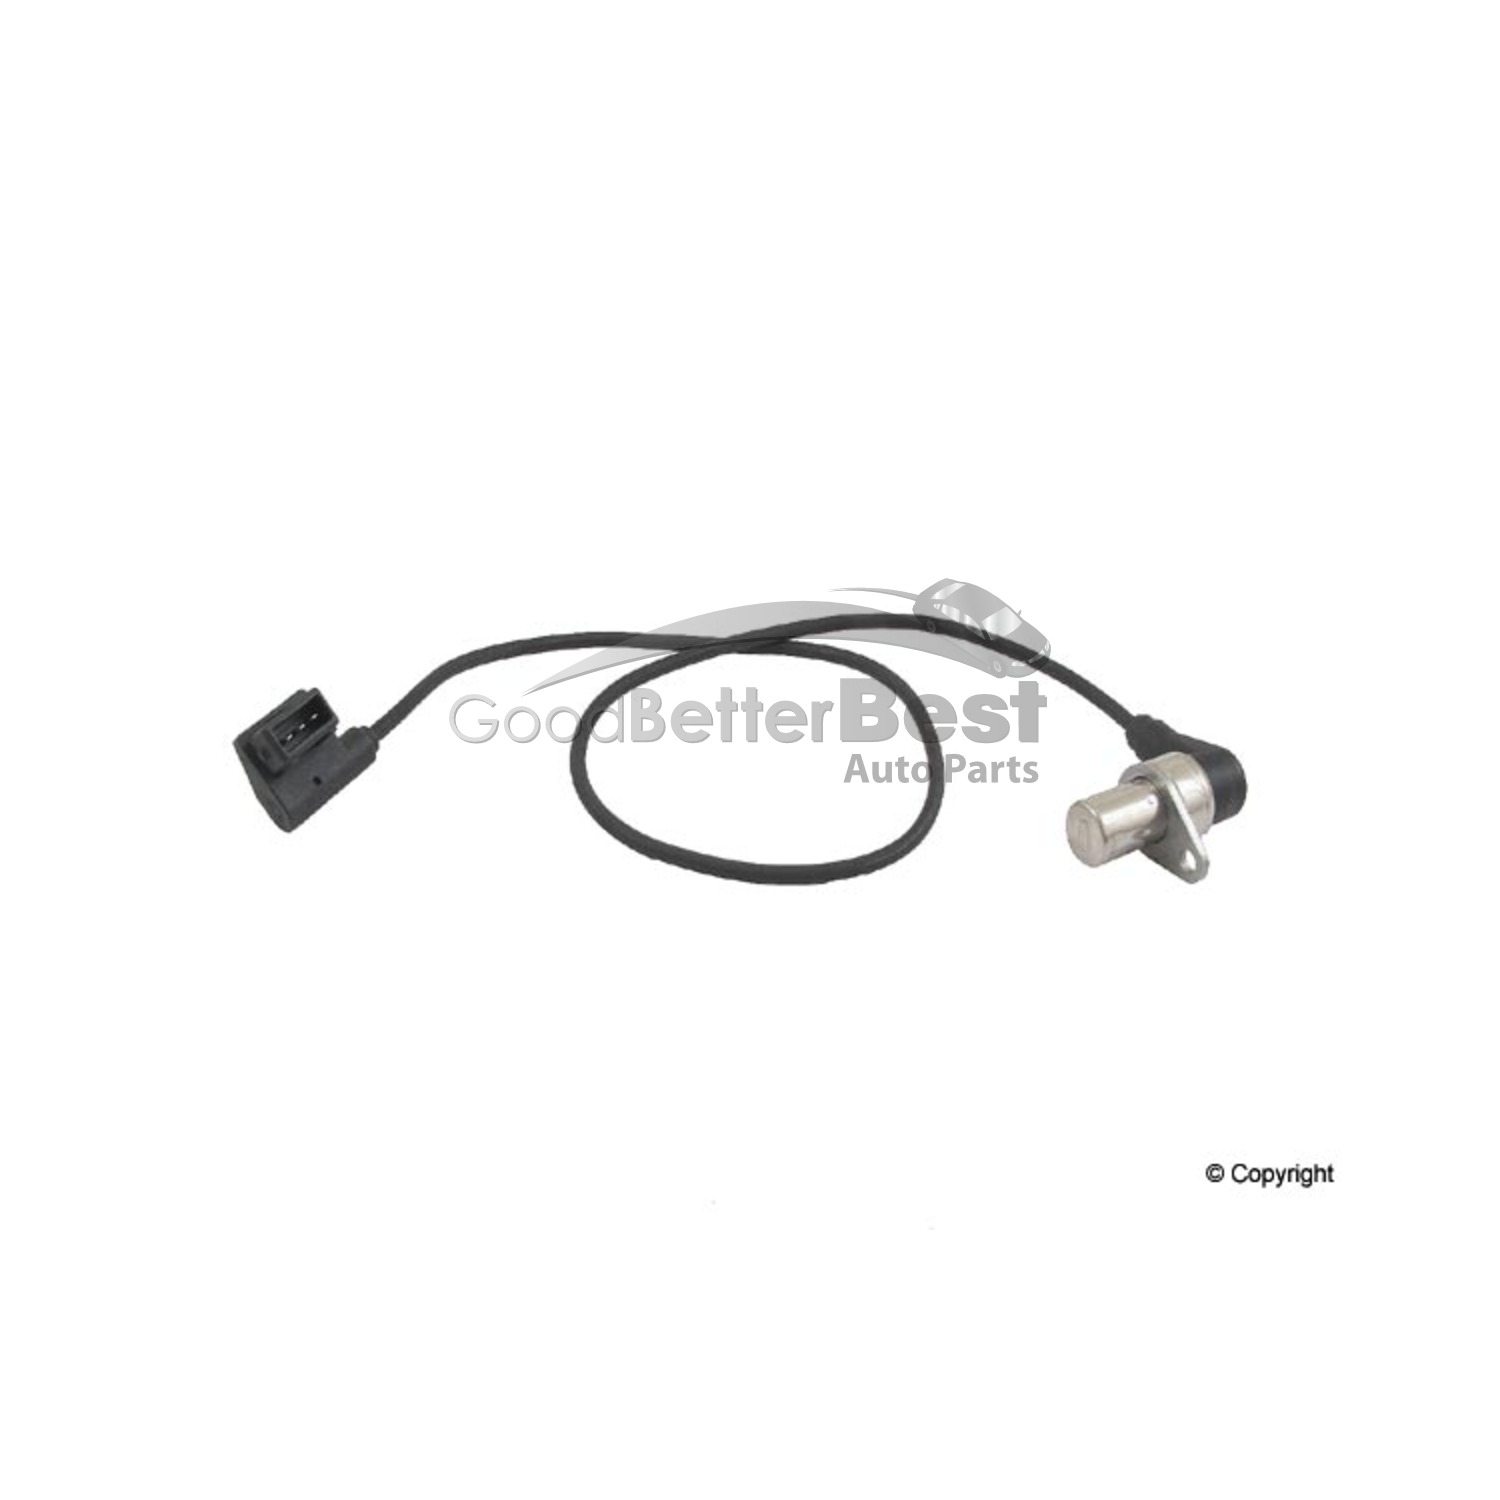 New Meyle Engine Crankshaft Position Sensor